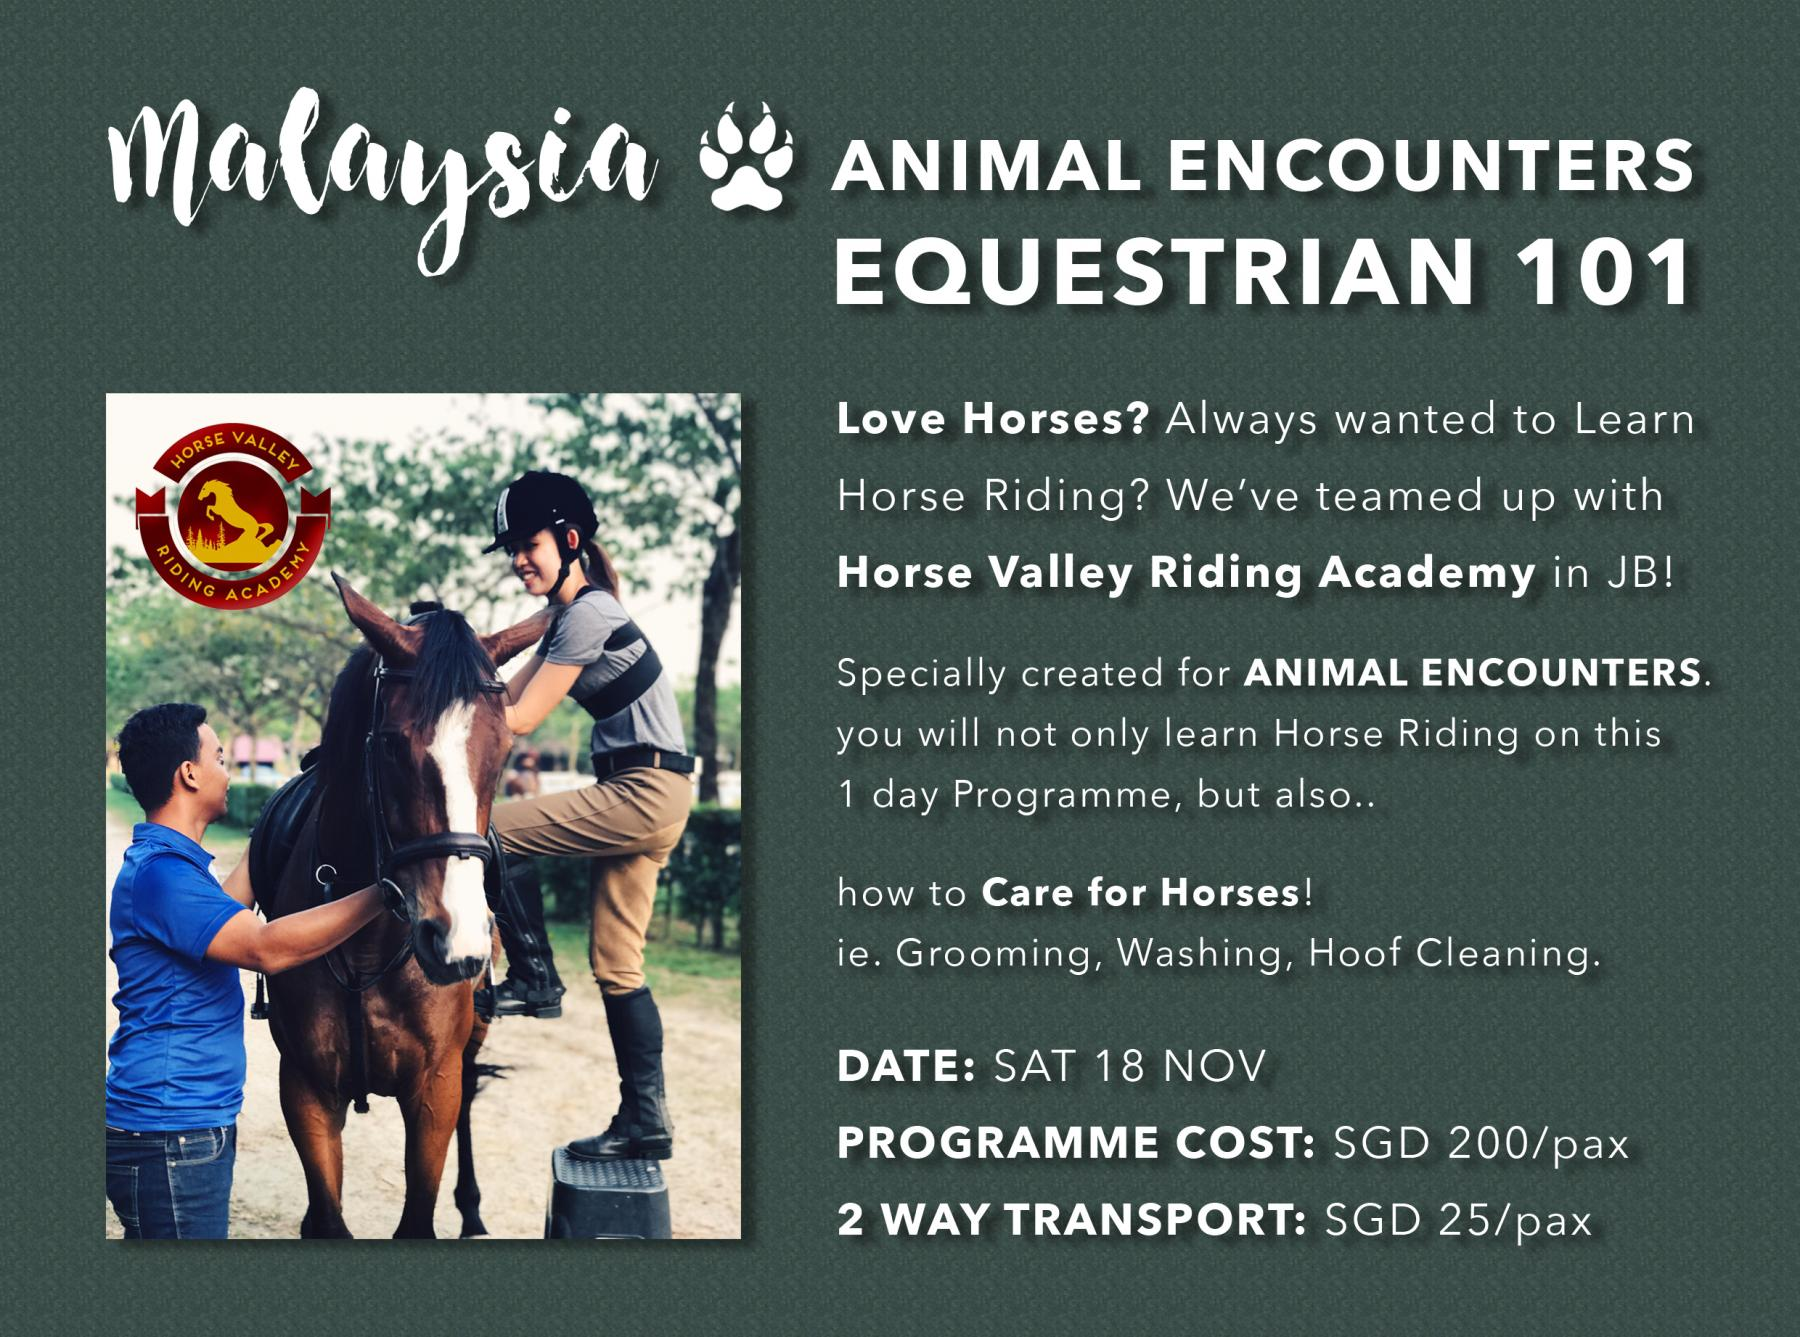 EQUESTRIAN 101 - Horse Riding & Horse Care - Day Trip to JB, Msia starting at Horse Valley Riding Academy Johor Bahru Johor Malaysia